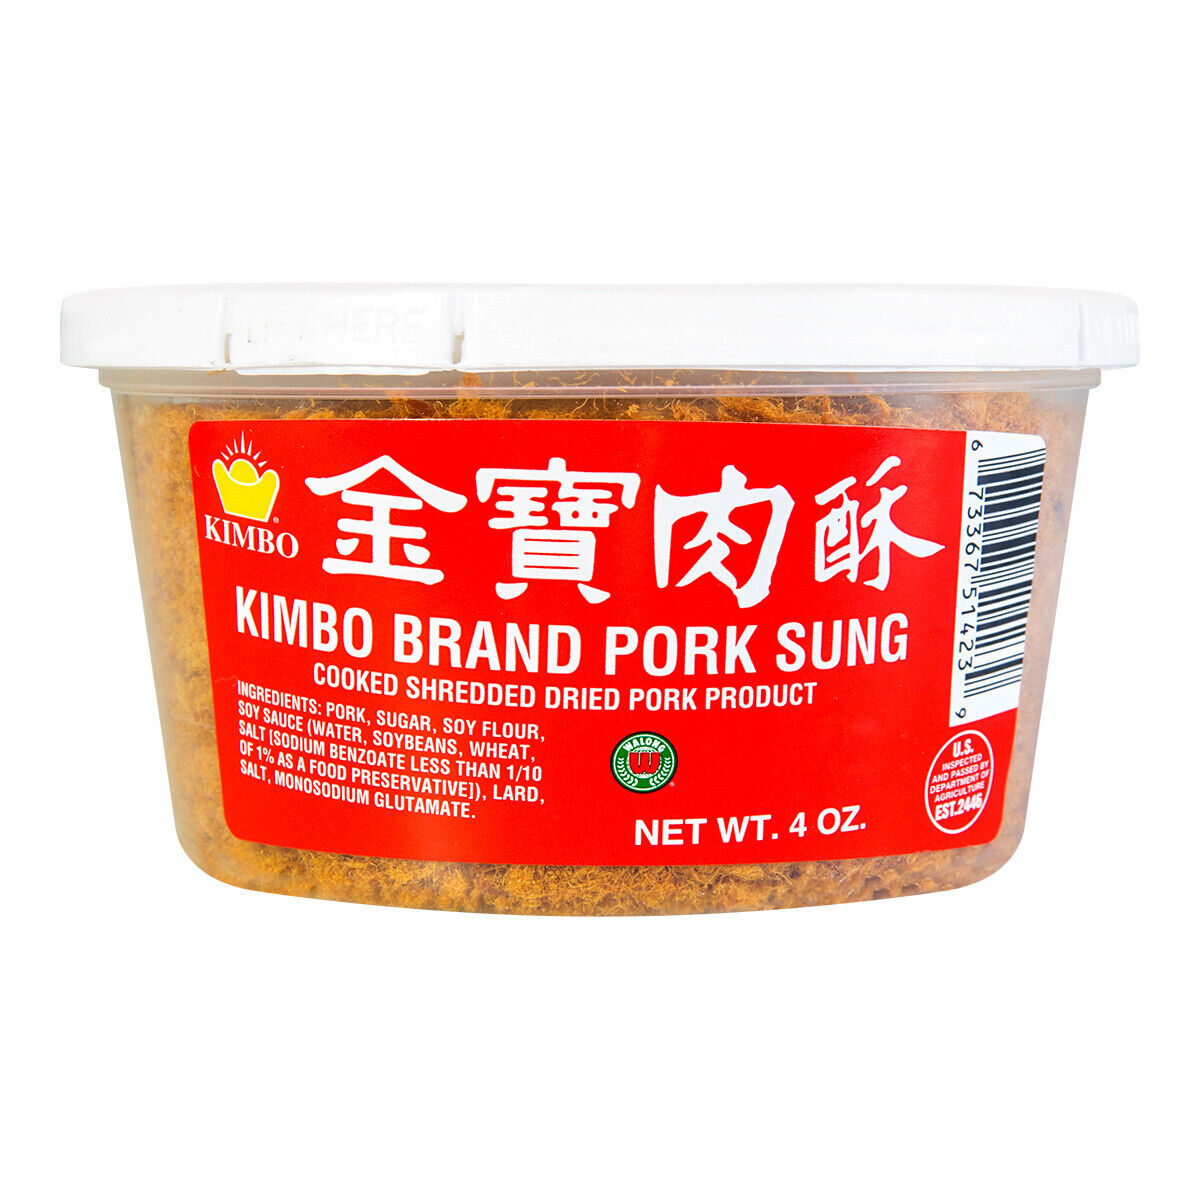 как выглядит KIMBO Brand Pork Sung Cooked Shredded Dried Pork Product 4 oz фото